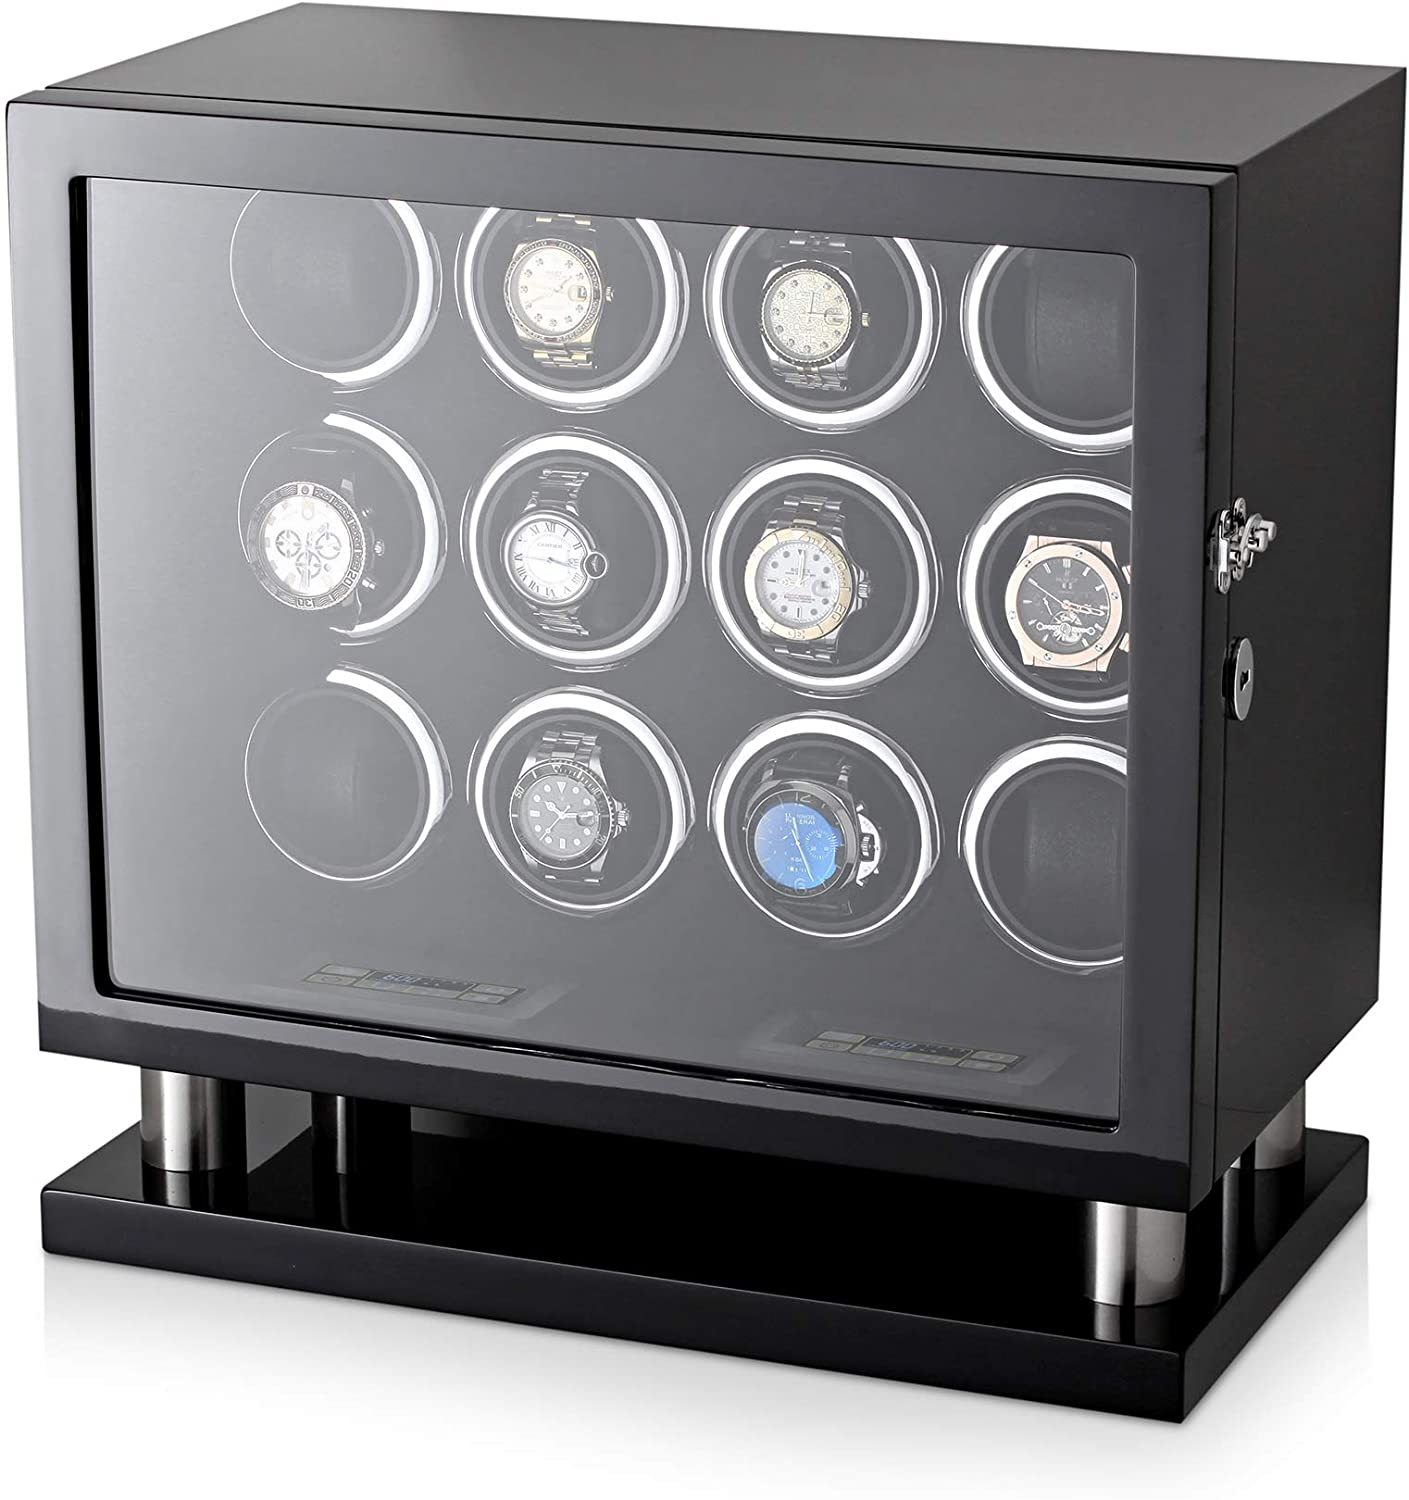 12 Watch Winder for Automatic Watches with LED Backlight and LCD Touchscreen Control